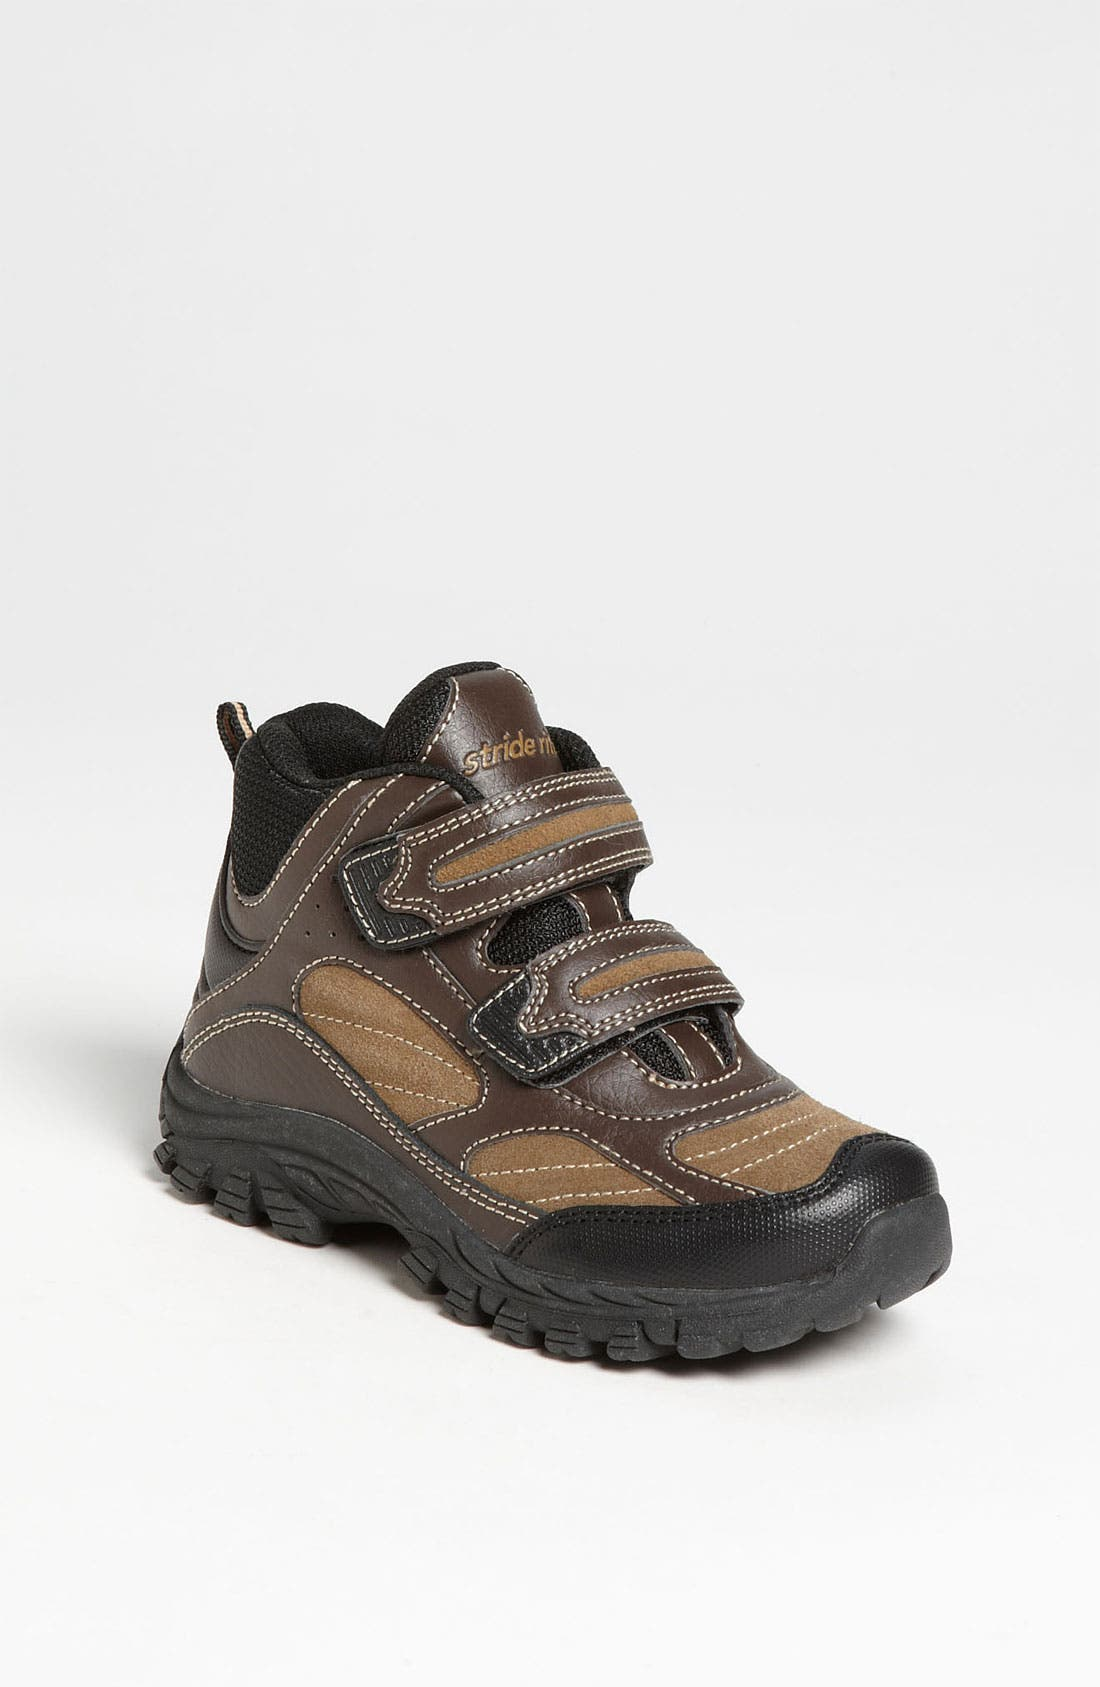 Alternate Image 1 Selected - Stride Rite 'Ritchie' Boot (Walker, Toddler & Little Kid)